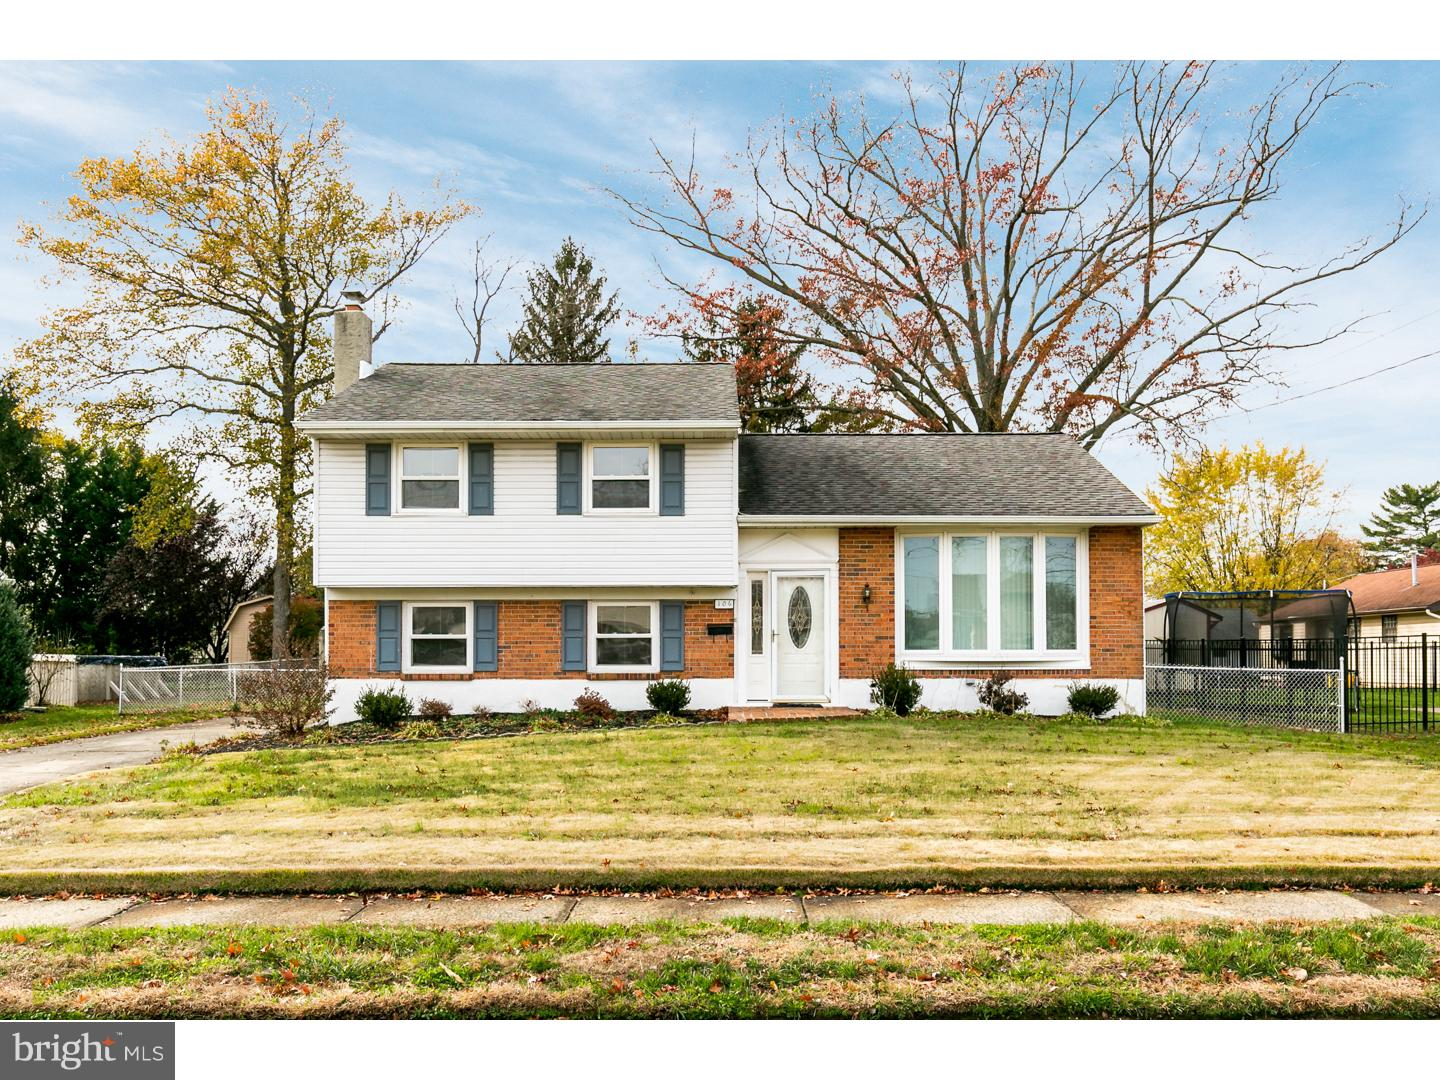 Single Family Home for Sale at 106 TILFORD Road Somerdale, New Jersey 08083 United States